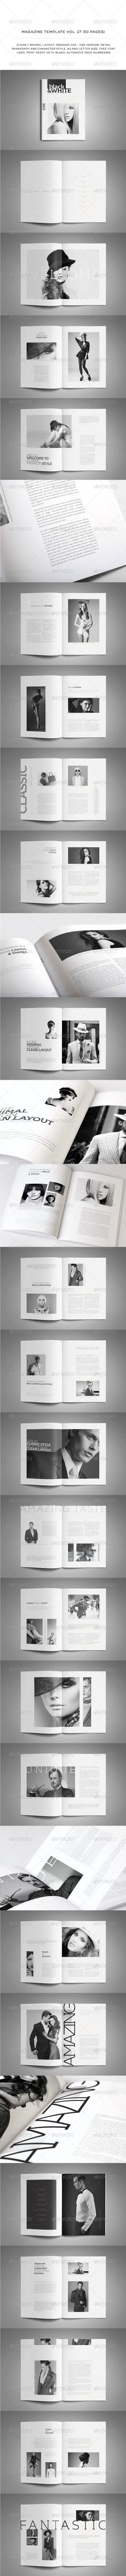 Indesign template vol 27 You can download this template here : http://graphicriver.net/item/a4letter-50-pages-mgz-vol-27/7169144?WT.oss_phrase=&WT.oss_rank=17&WT.z_author=Shafura&WT.ac=search_thumb